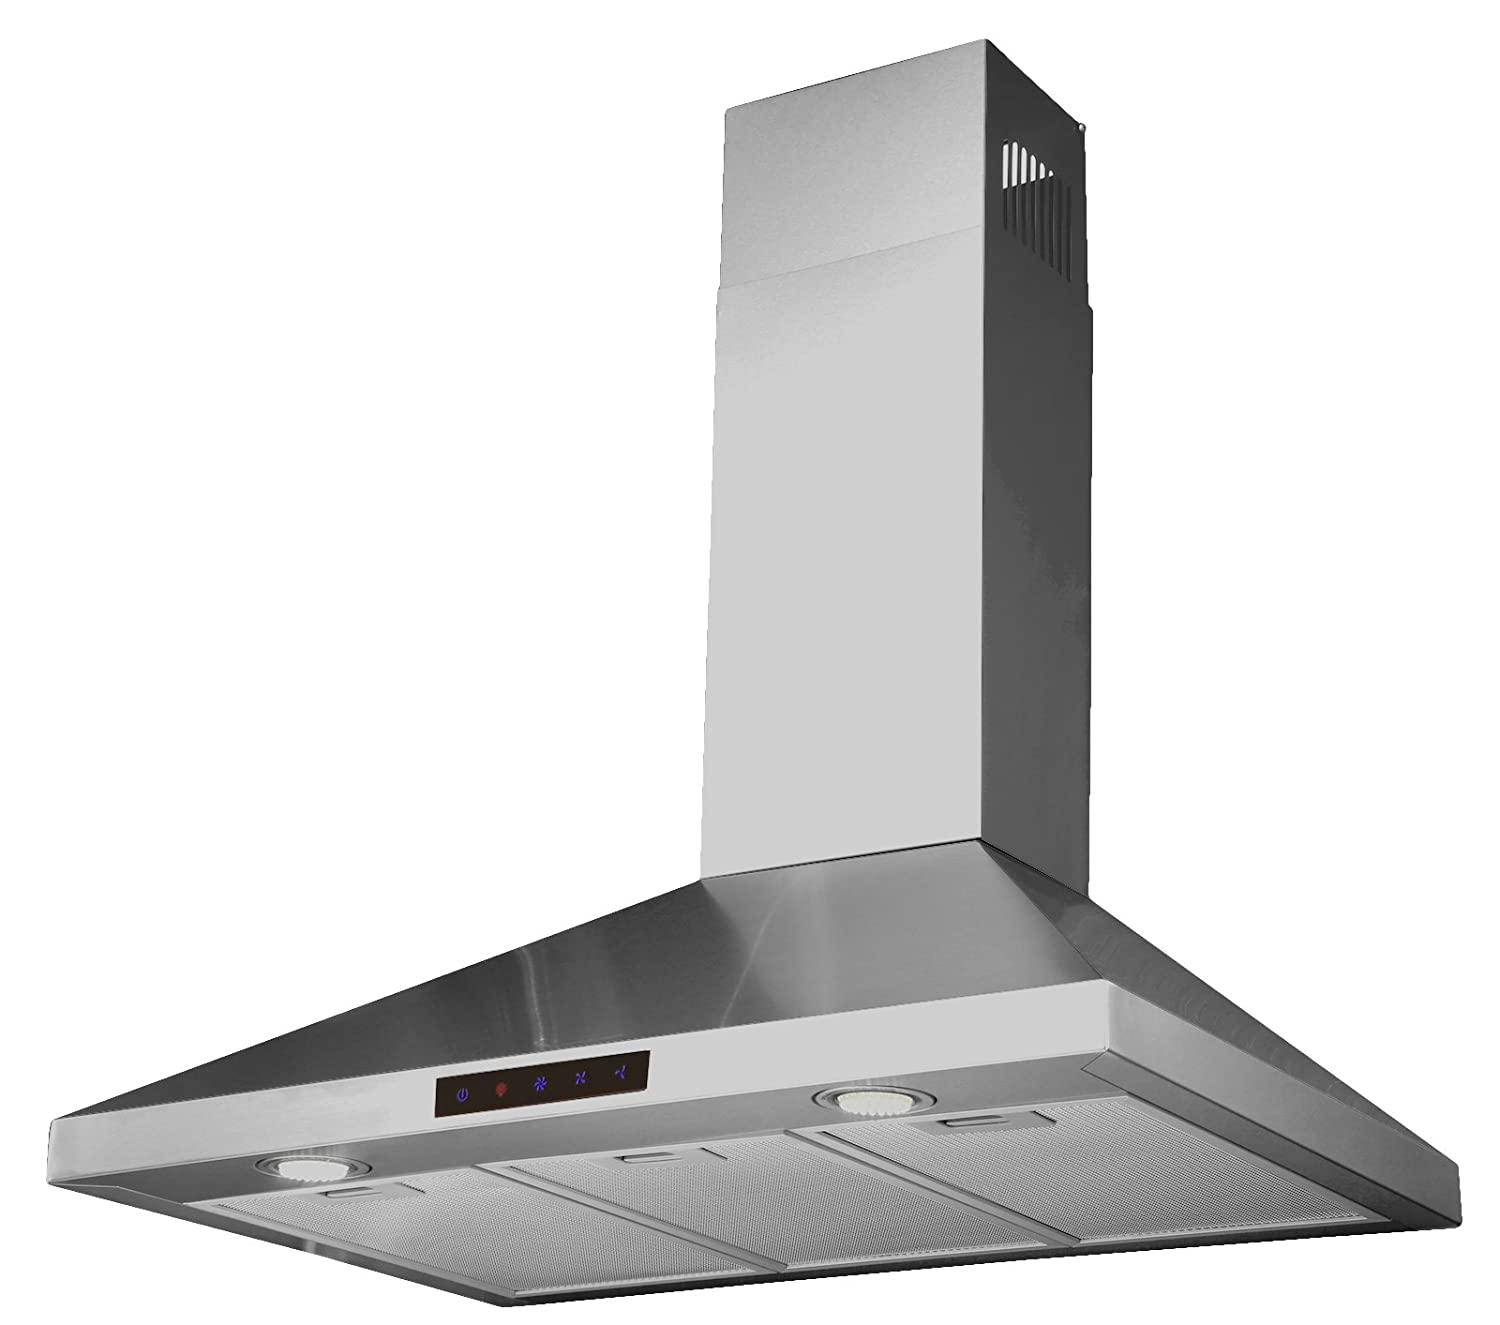 superb Stainless Steel Kitchen Exhaust Hoods #5: Kitchen Bath Collection STL75-LED Stainless Steel Wall-Mounted Kitchen Range Hood with Highu2026